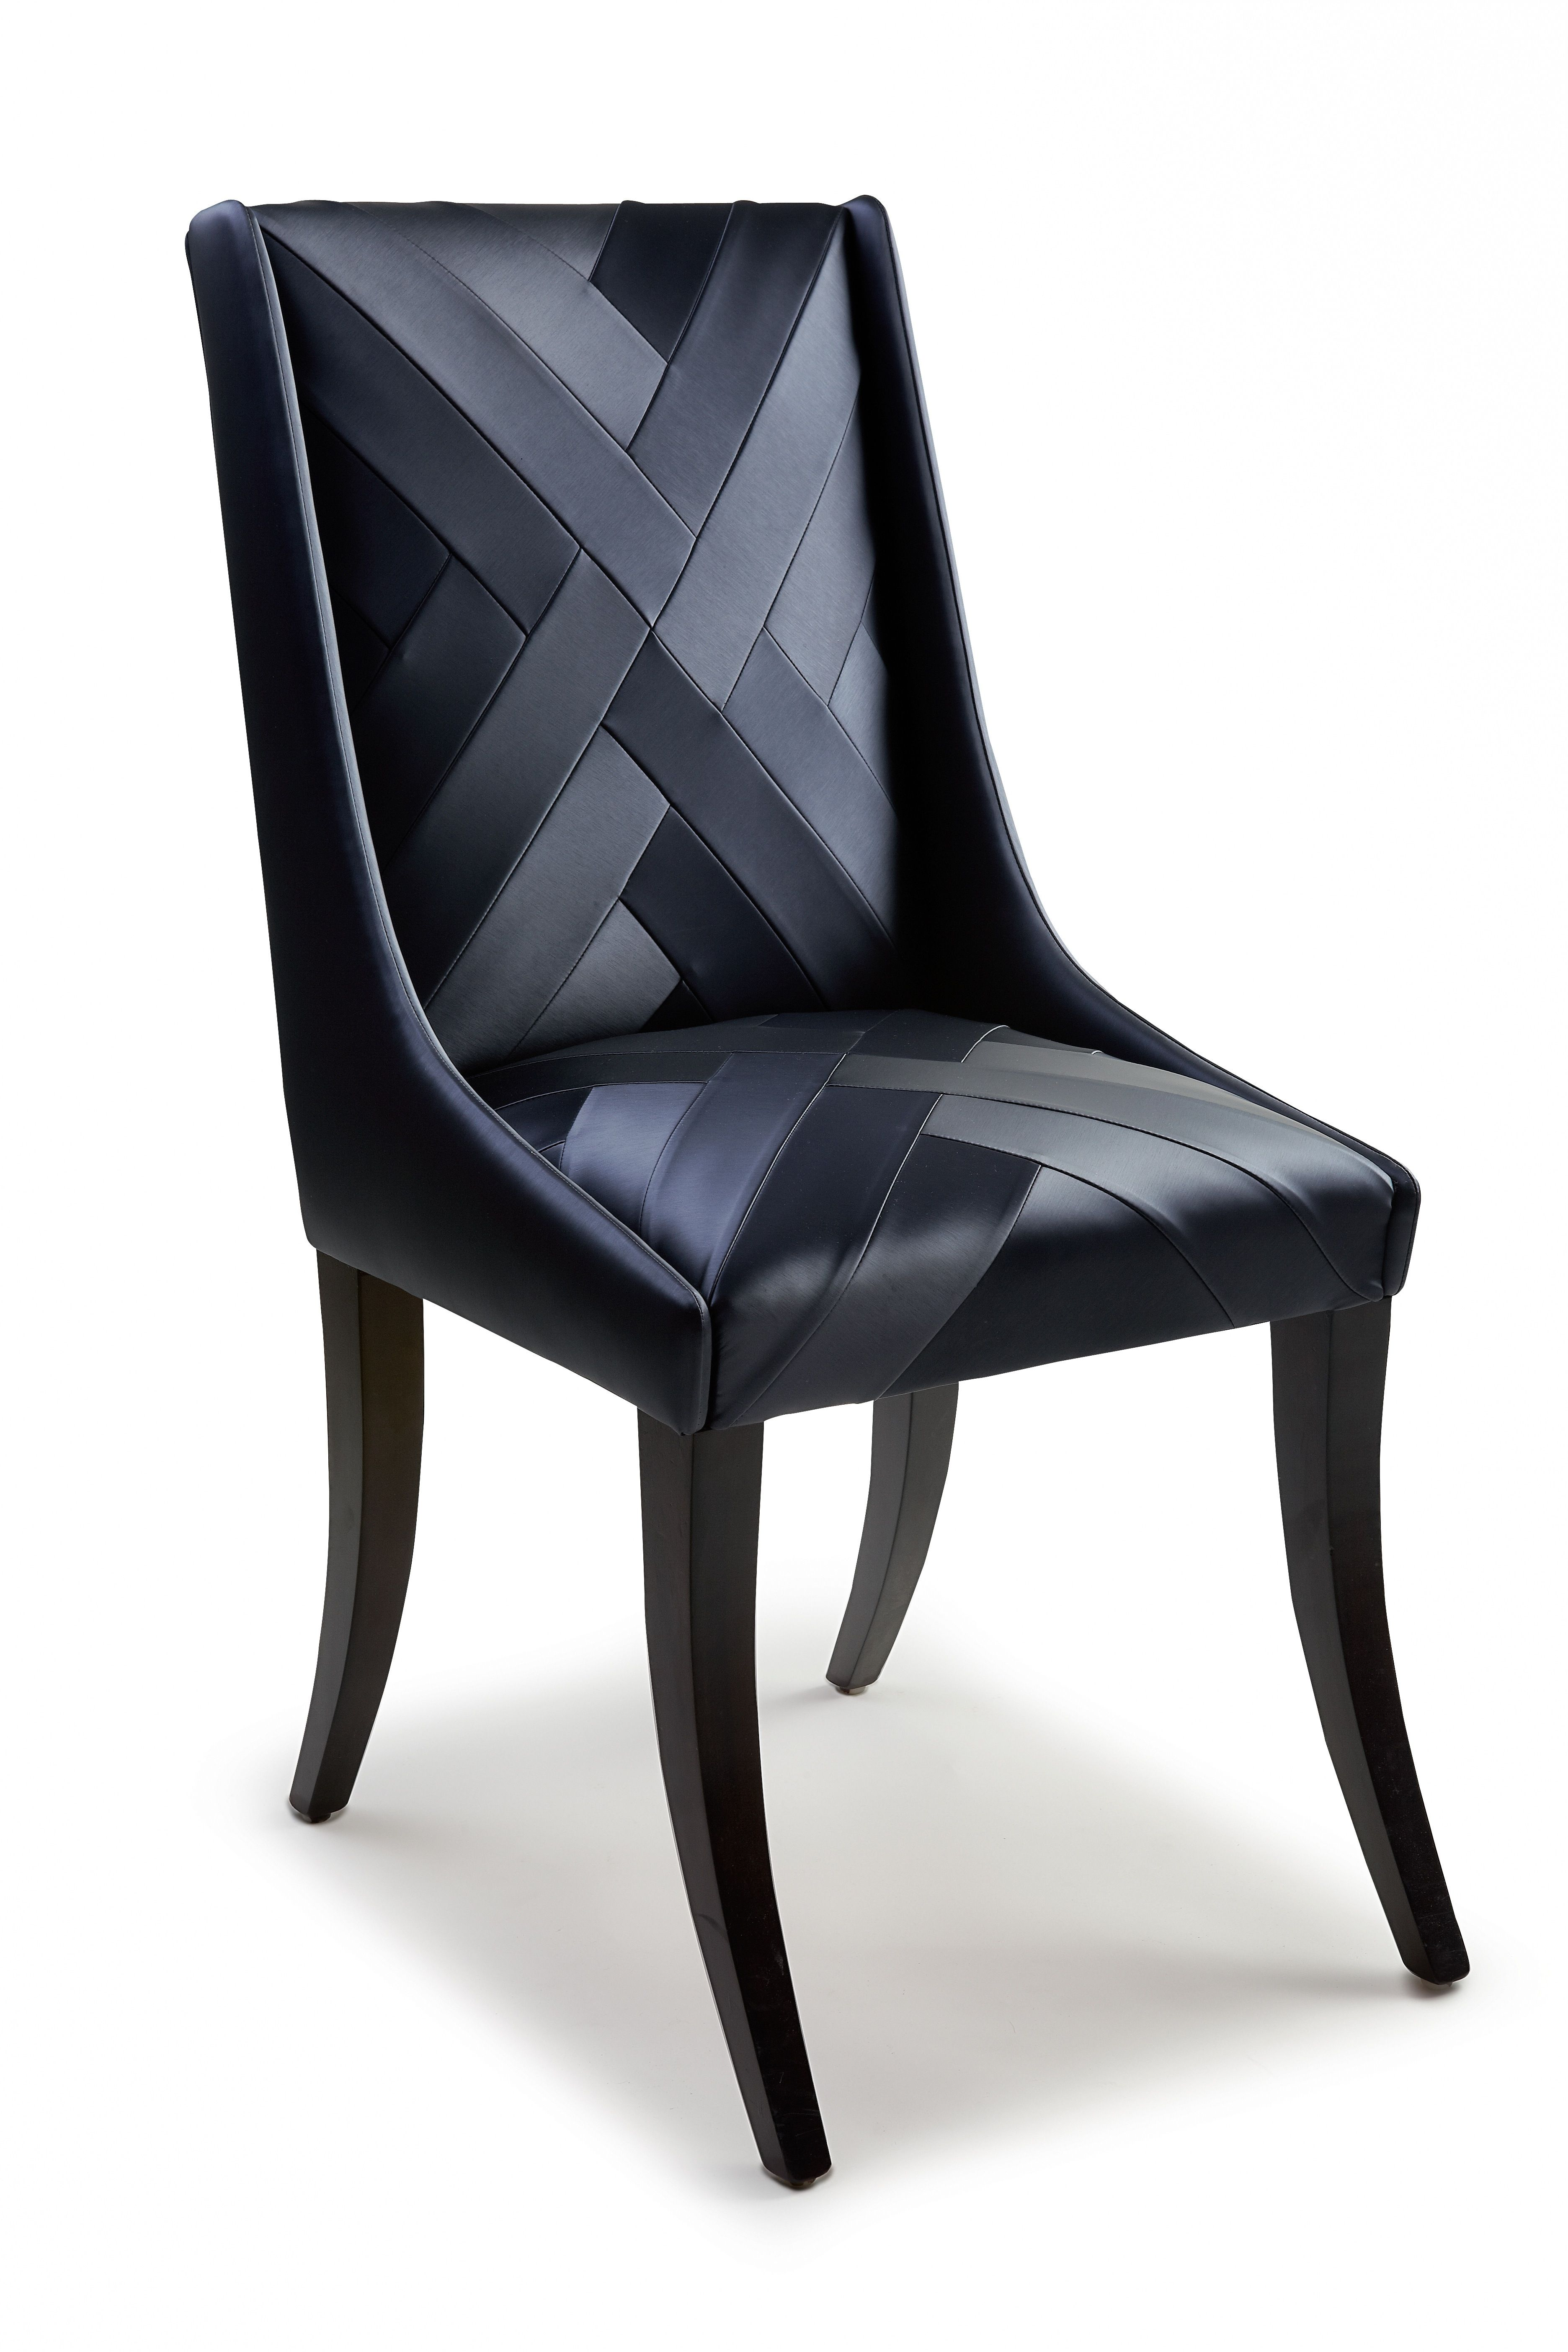 Best Chevron Dining Chair Black Vinyl Dining Chair Upholstered With Chevron Detail Sillas 400 x 300